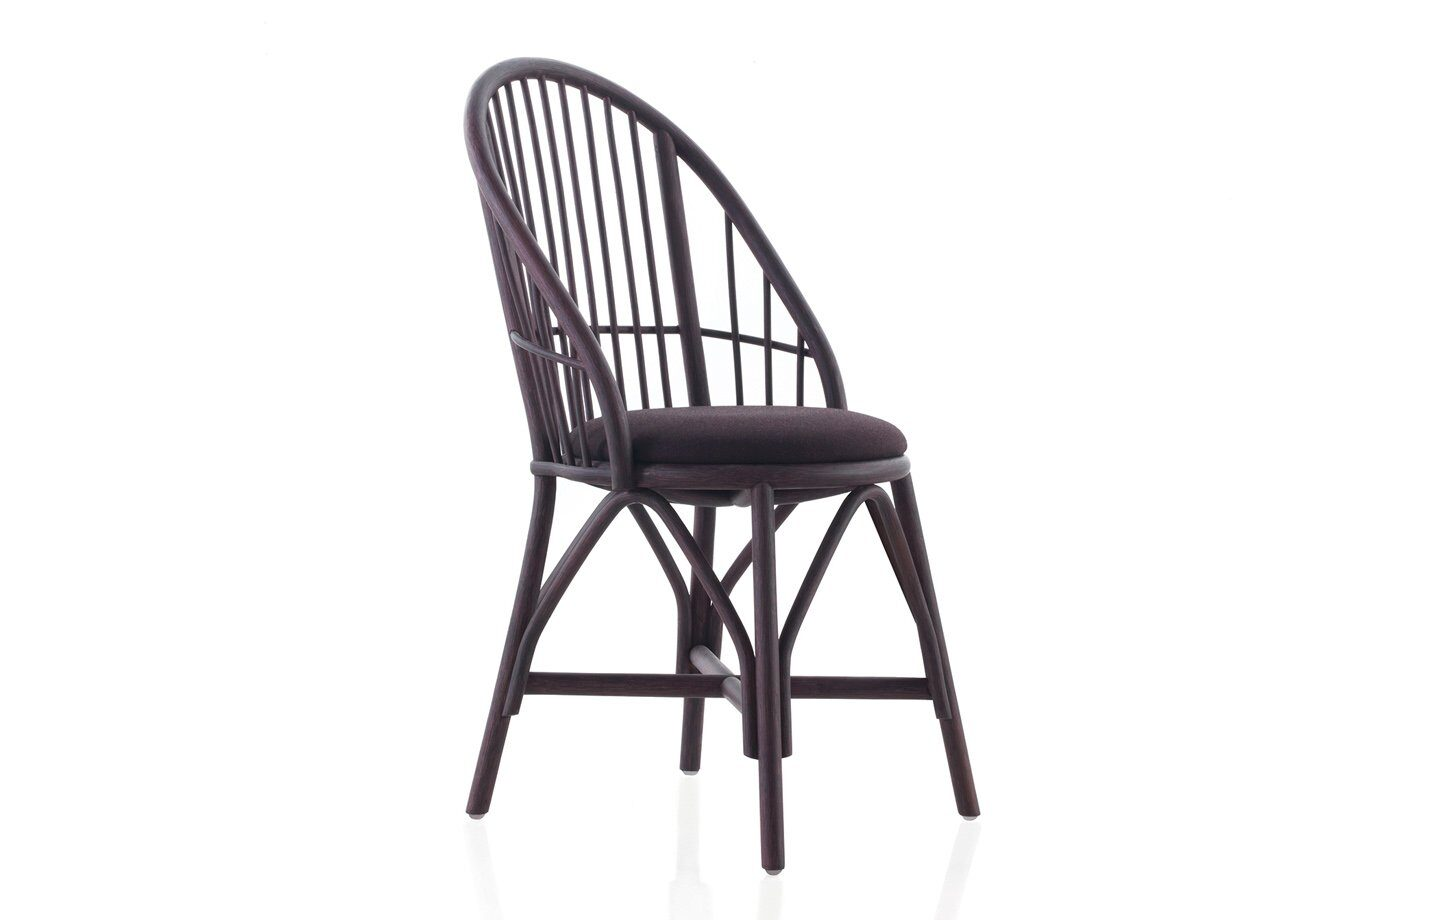 Coqueta-upholstered-Rattan-dining-chair-01